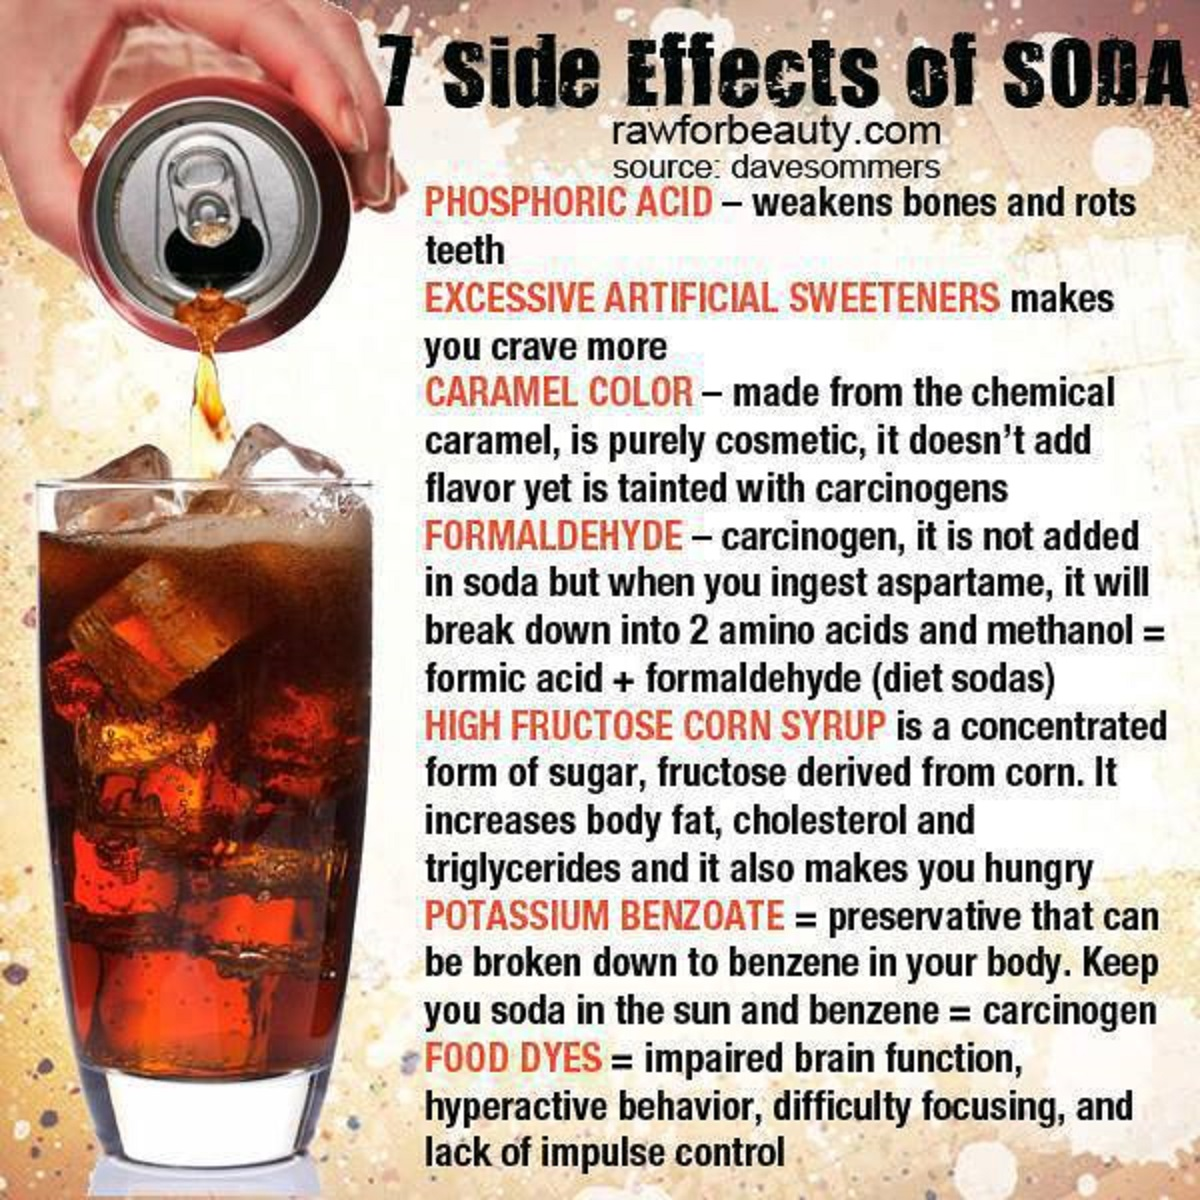 EFFECTS OF SODA